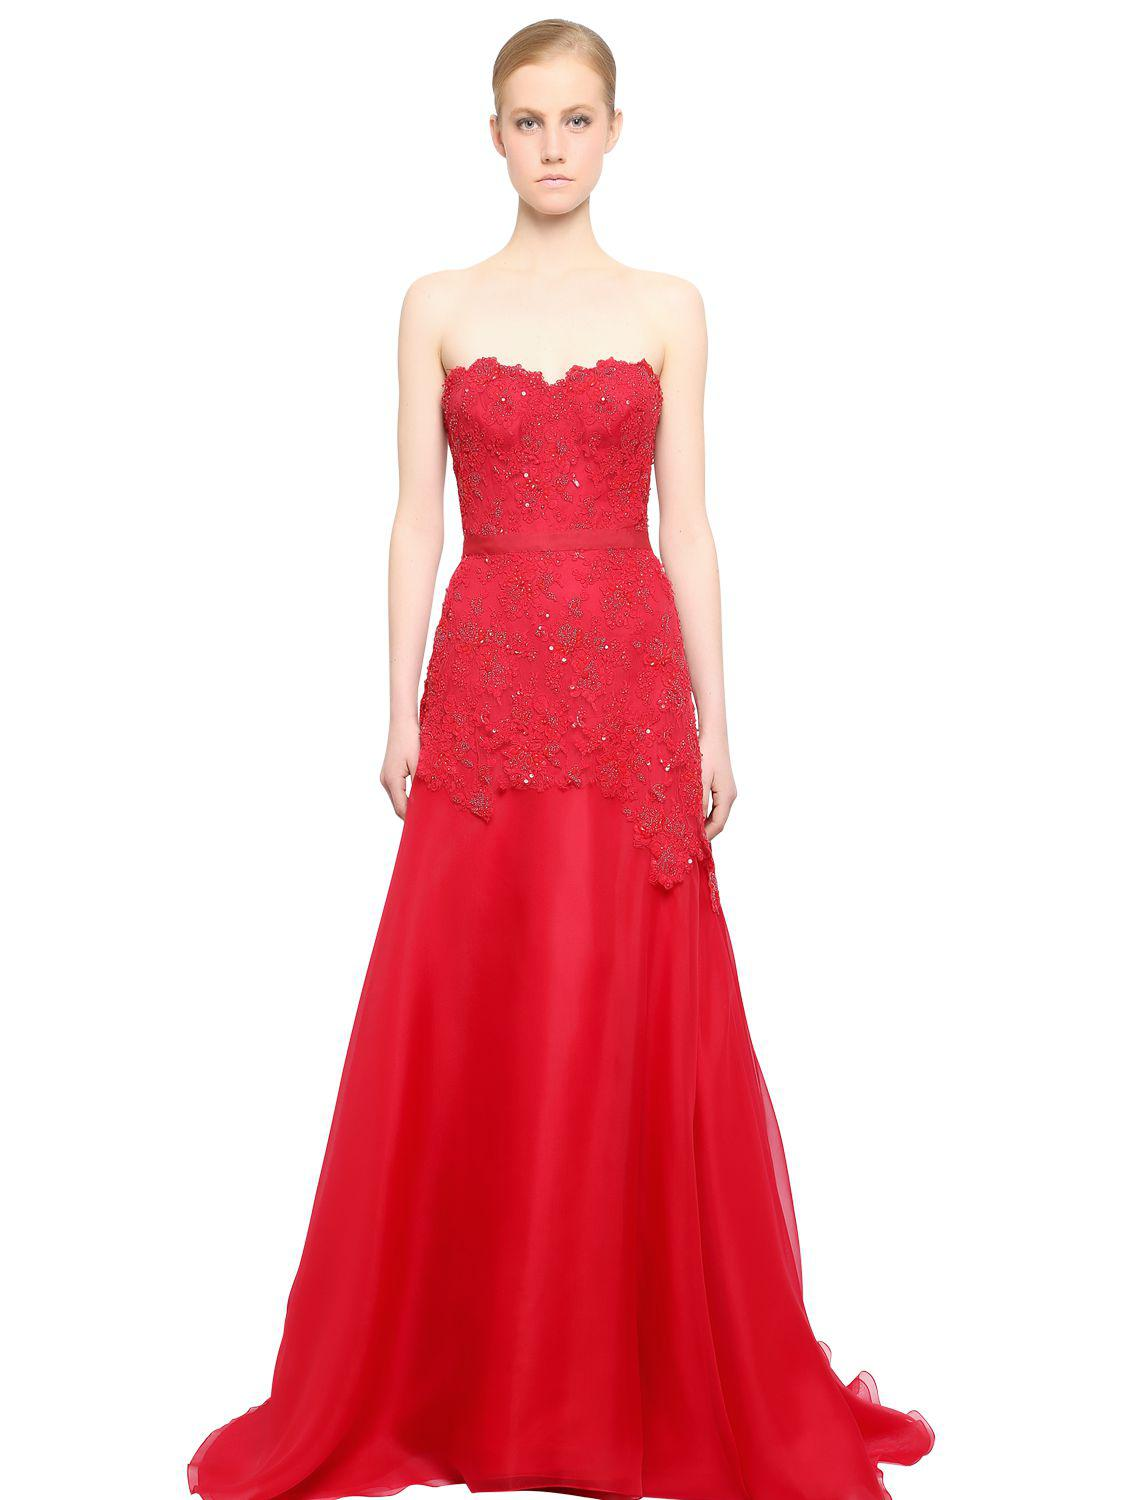 Lyst - Reem Acra Embroidered Lace & Silk Organza Dress in Red